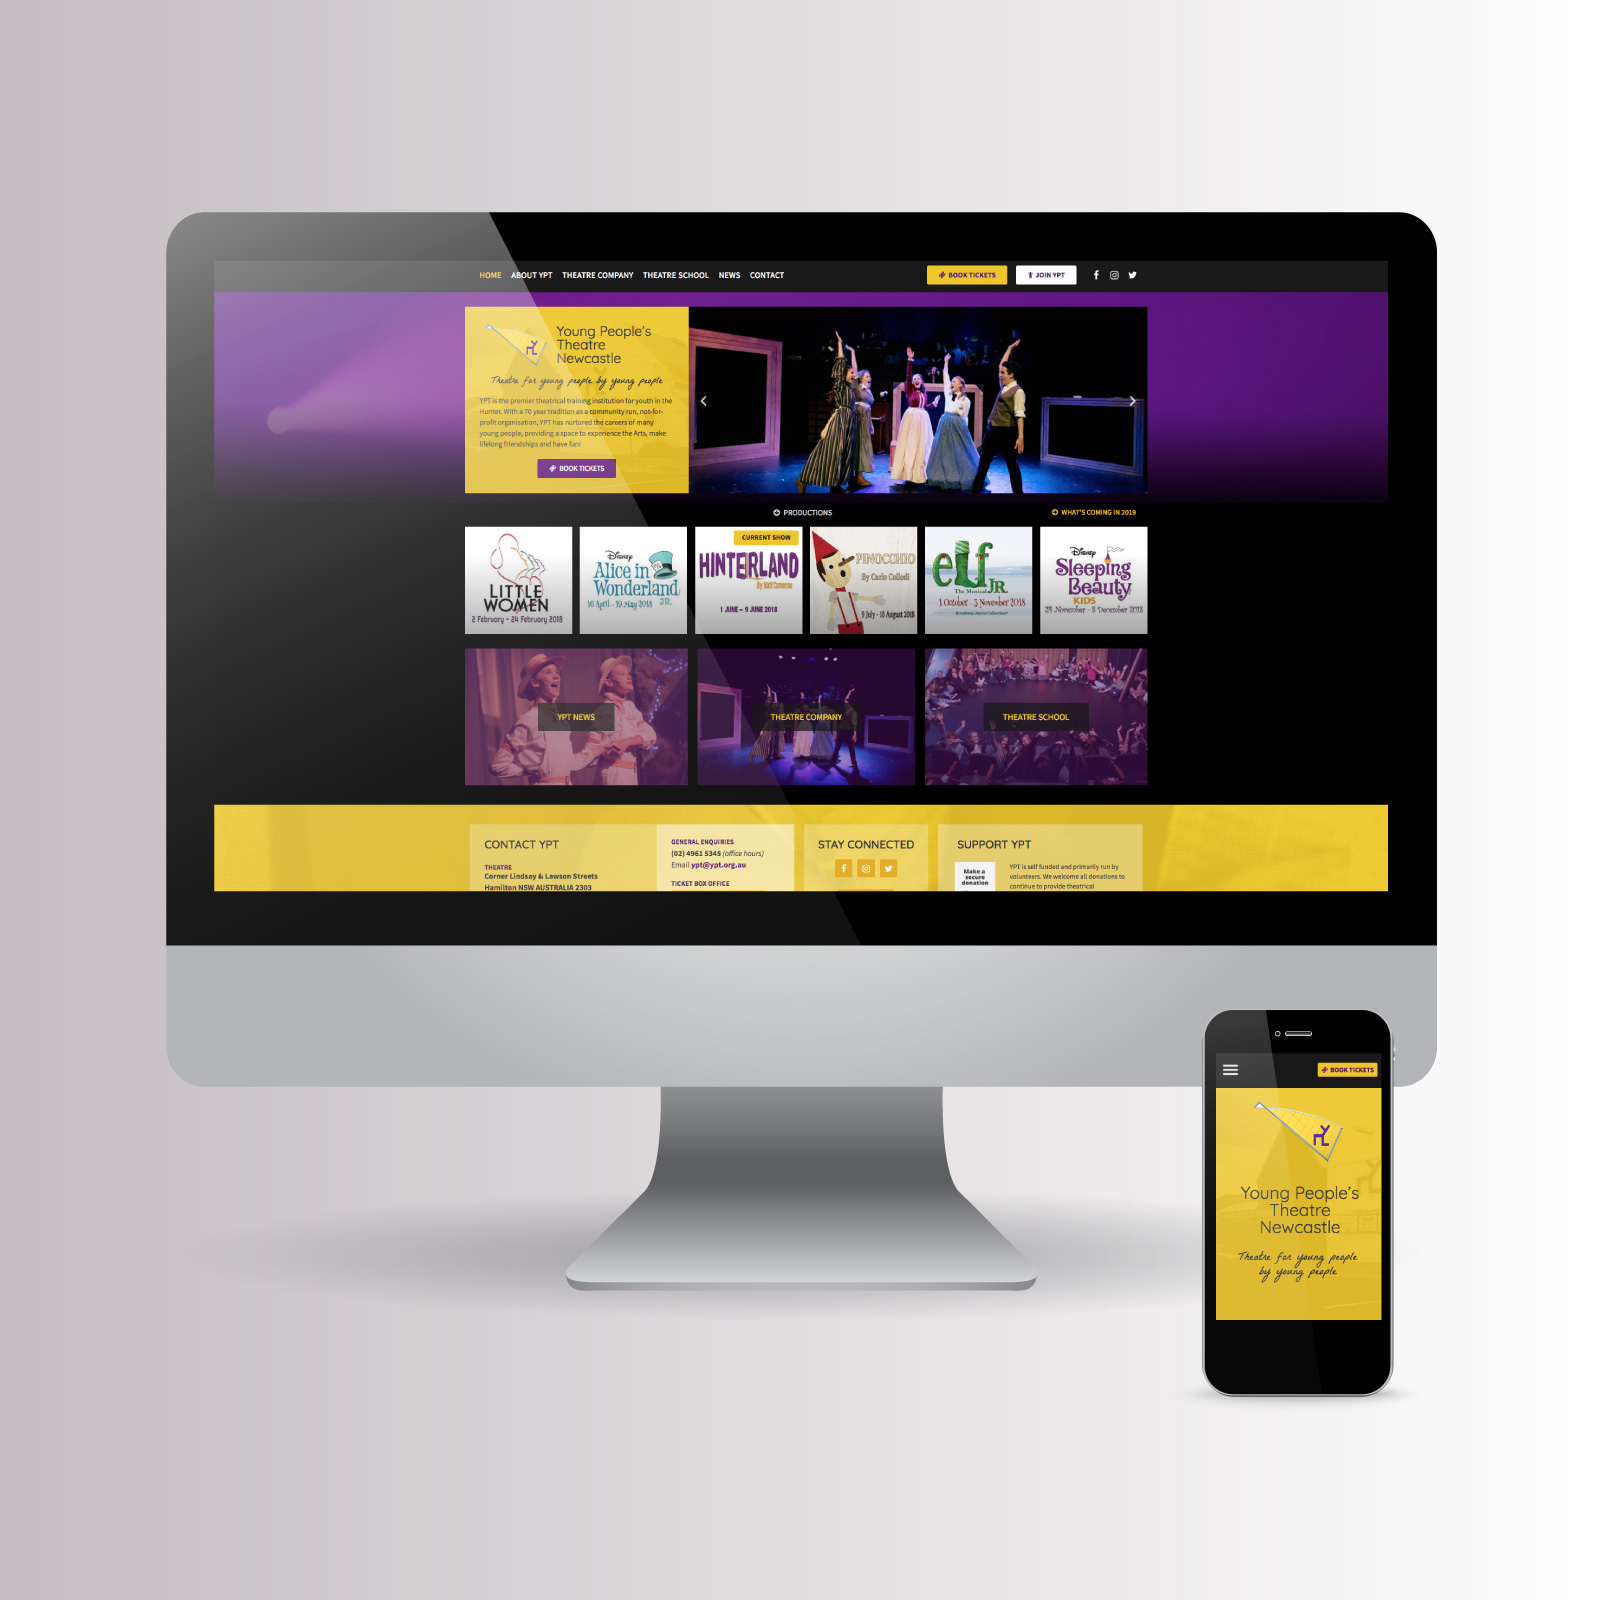 Young People's Theatre website on desktop